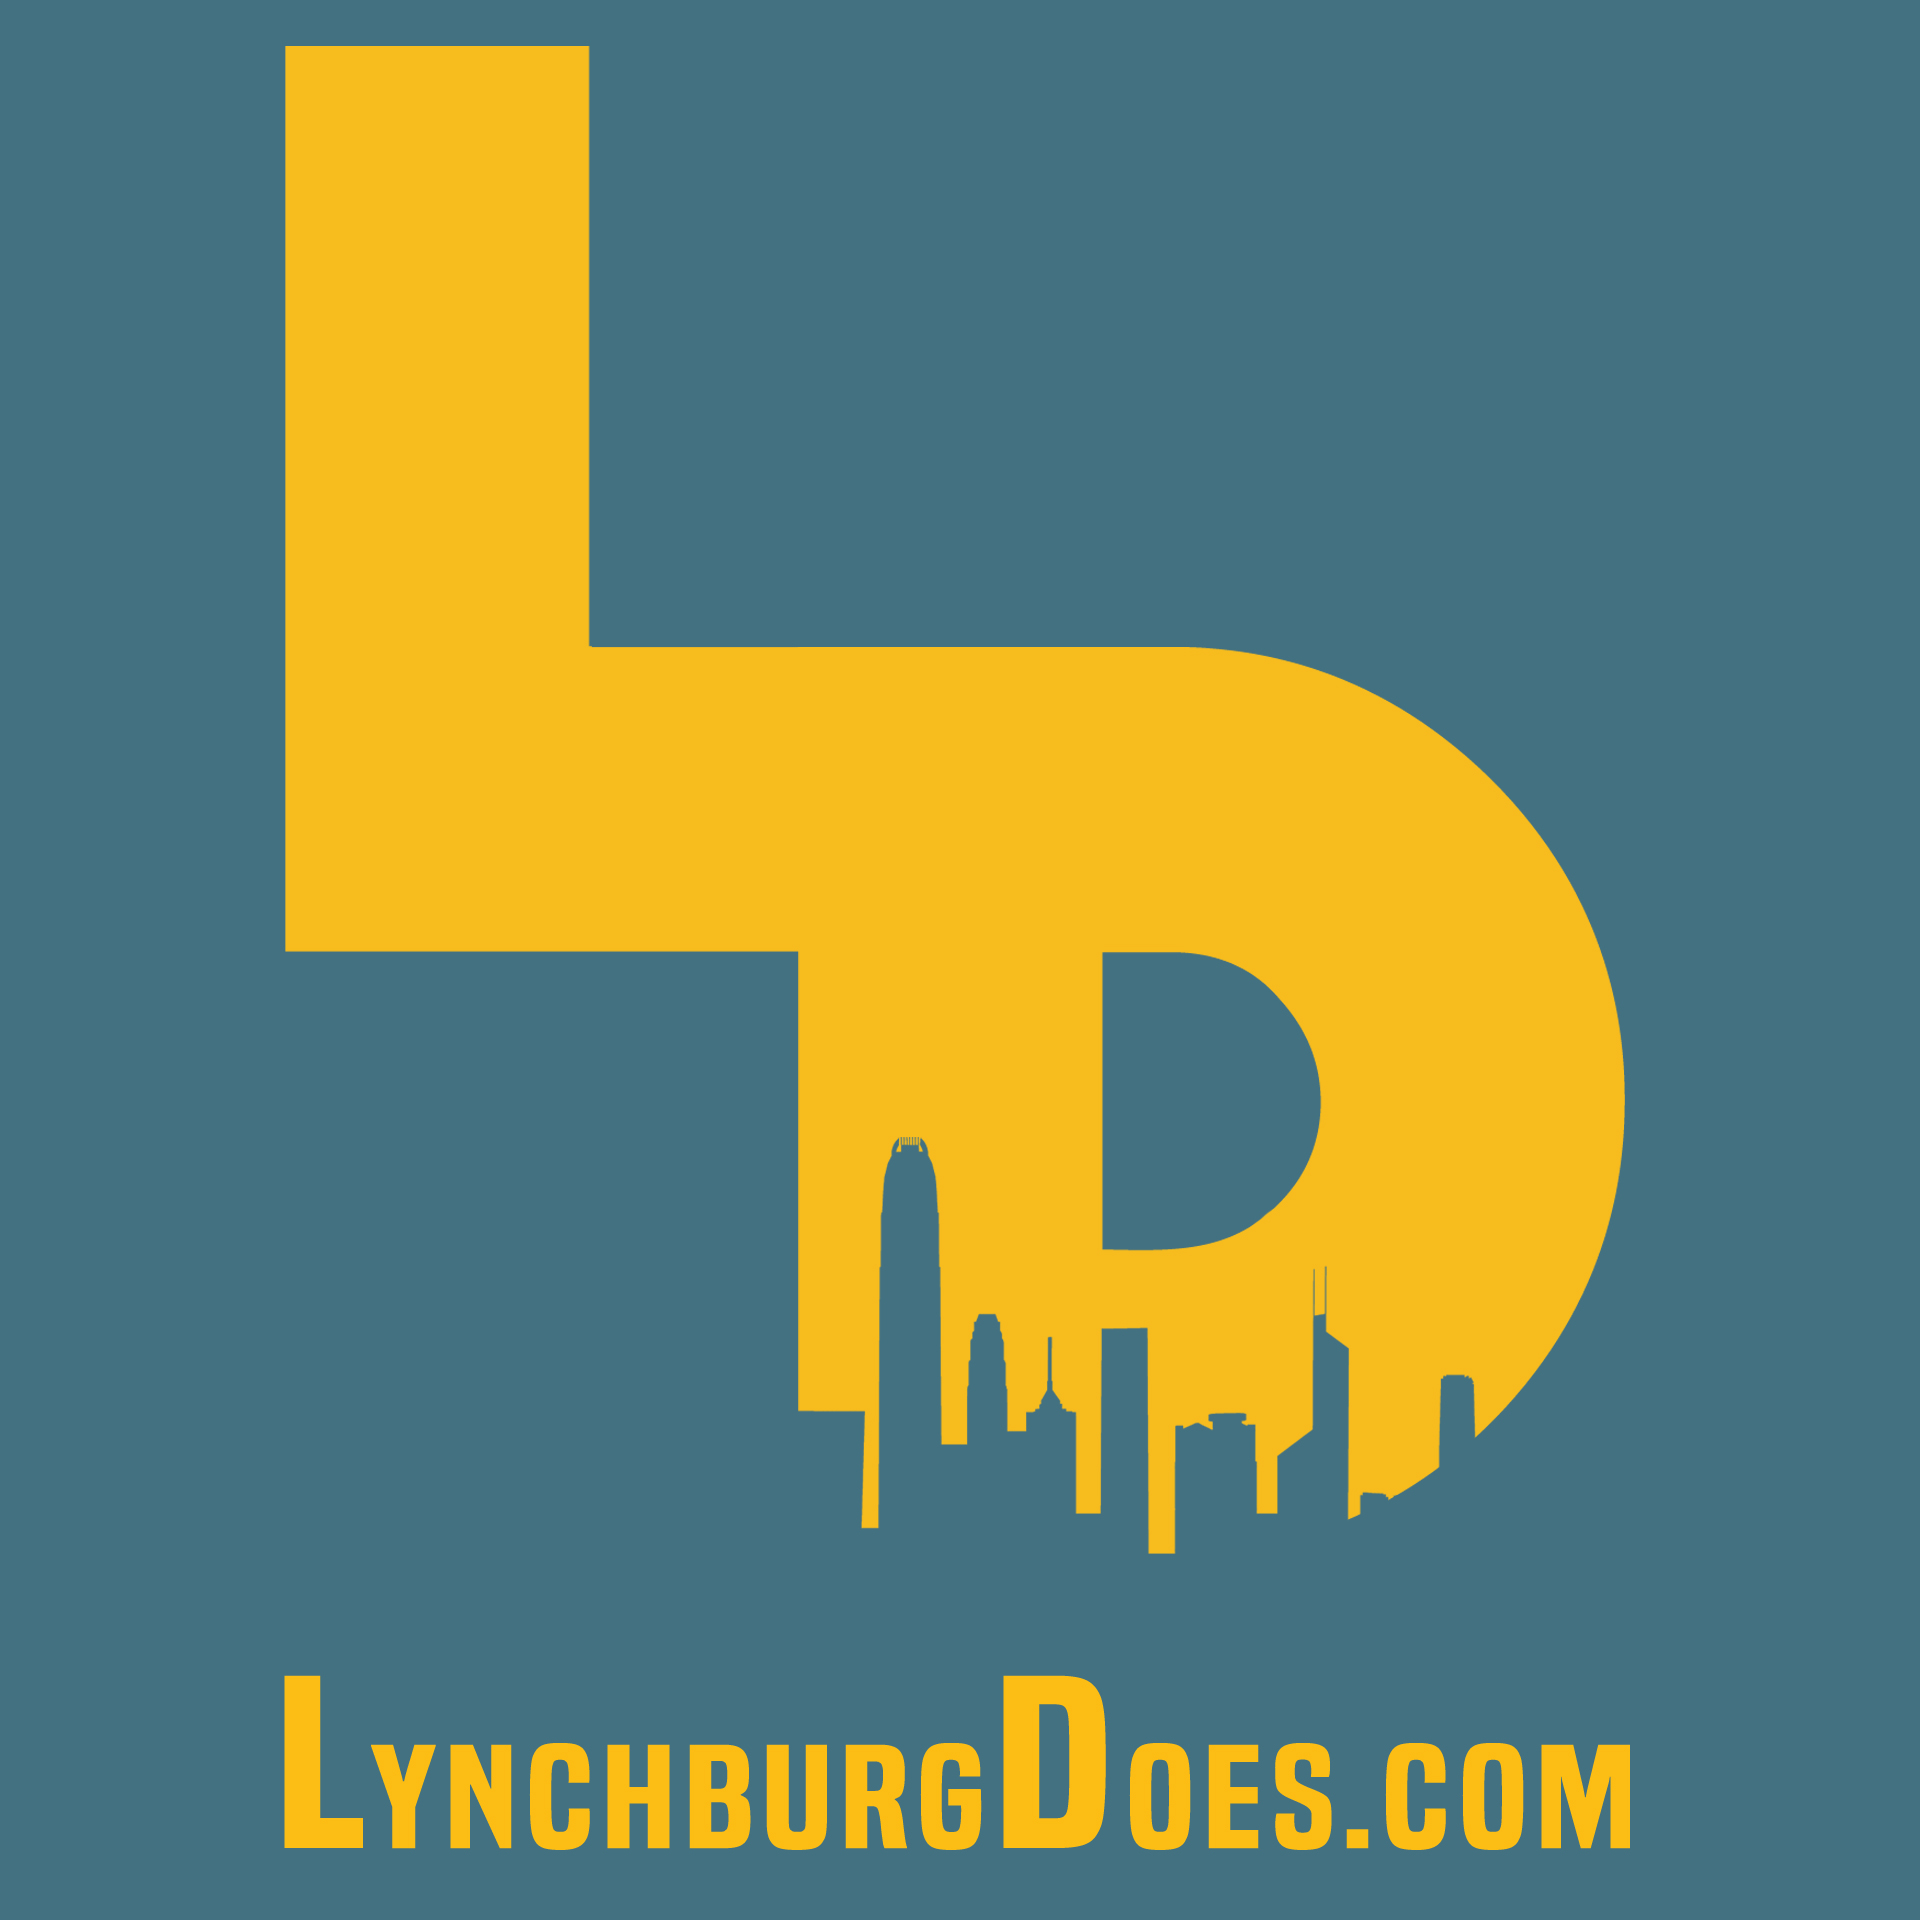 Week Two   To those of you who are new to the site, welcome to LynchburgDoes.com. To those of you who are returning, welcome back. And, thank you. We were gratified and inspired by the response to our launch. We have hundreds of more people following us on Facebook than we expected, and dozens of you have already signed up to receive occasional newsletters and follow the site. We've also heard from many of you, and that has all been very encouraging.        Turns out, there are lots of things to do in Lynchburg, and lots of people who'd like to know about those things. Our job will be to learn as much as we can about happenings in and around town, and to let you know in a timely, informative, and entertaining fashion. We're aiming to cover a diverse cross-section of arts and cultural events; nightlife happenings and family-friendly activities; food and drink; stuff you can do on the cheap, and even some pricier things. In short, we'd like to be an easy-to-access hub for thoughtful, illuminating, and engaging events listings that are as detailed, accurate, and up-to-date as possible.        We could use your help. Sign up to follow us below. Like us and follow us on Facebook. Talk about us. Post a link to us. Tell two friends to visit the site. Check in as often as you'd like. And, by all means, go out and have some fun in Lynchburg.         You can also contact us and send tips to  Events@LynchburgDoes.com . We'll be working on the next slate of events for next week, and on the many design and technical challenges that are just part of online publishing.         Thank you for stopping by,    Matt Ashare Editor and Publisher LynchburgDoes.com